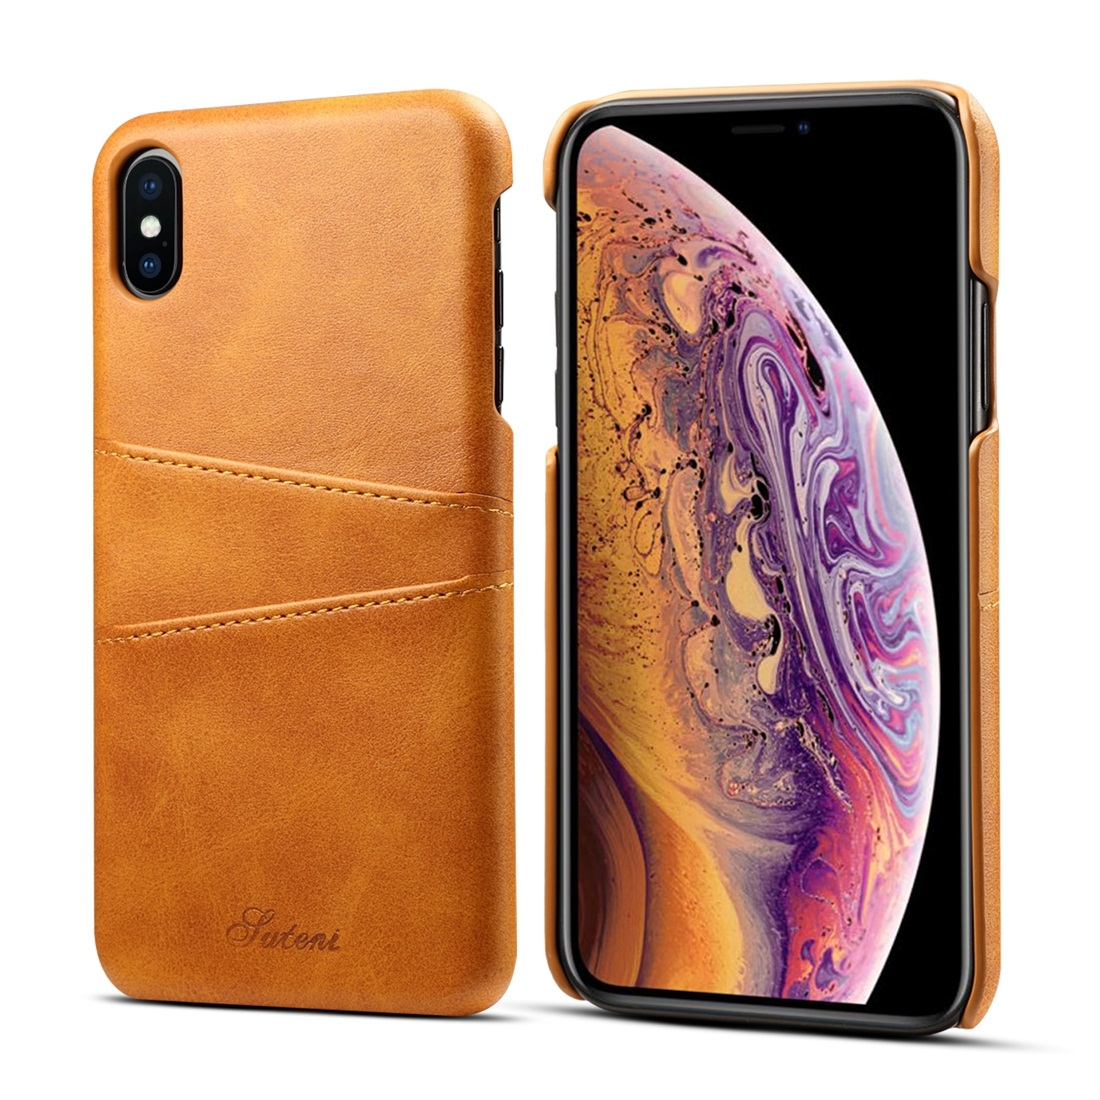 Suteni Calf Texture Protective Case for iPhone XS Max with Card Slots (Brown)